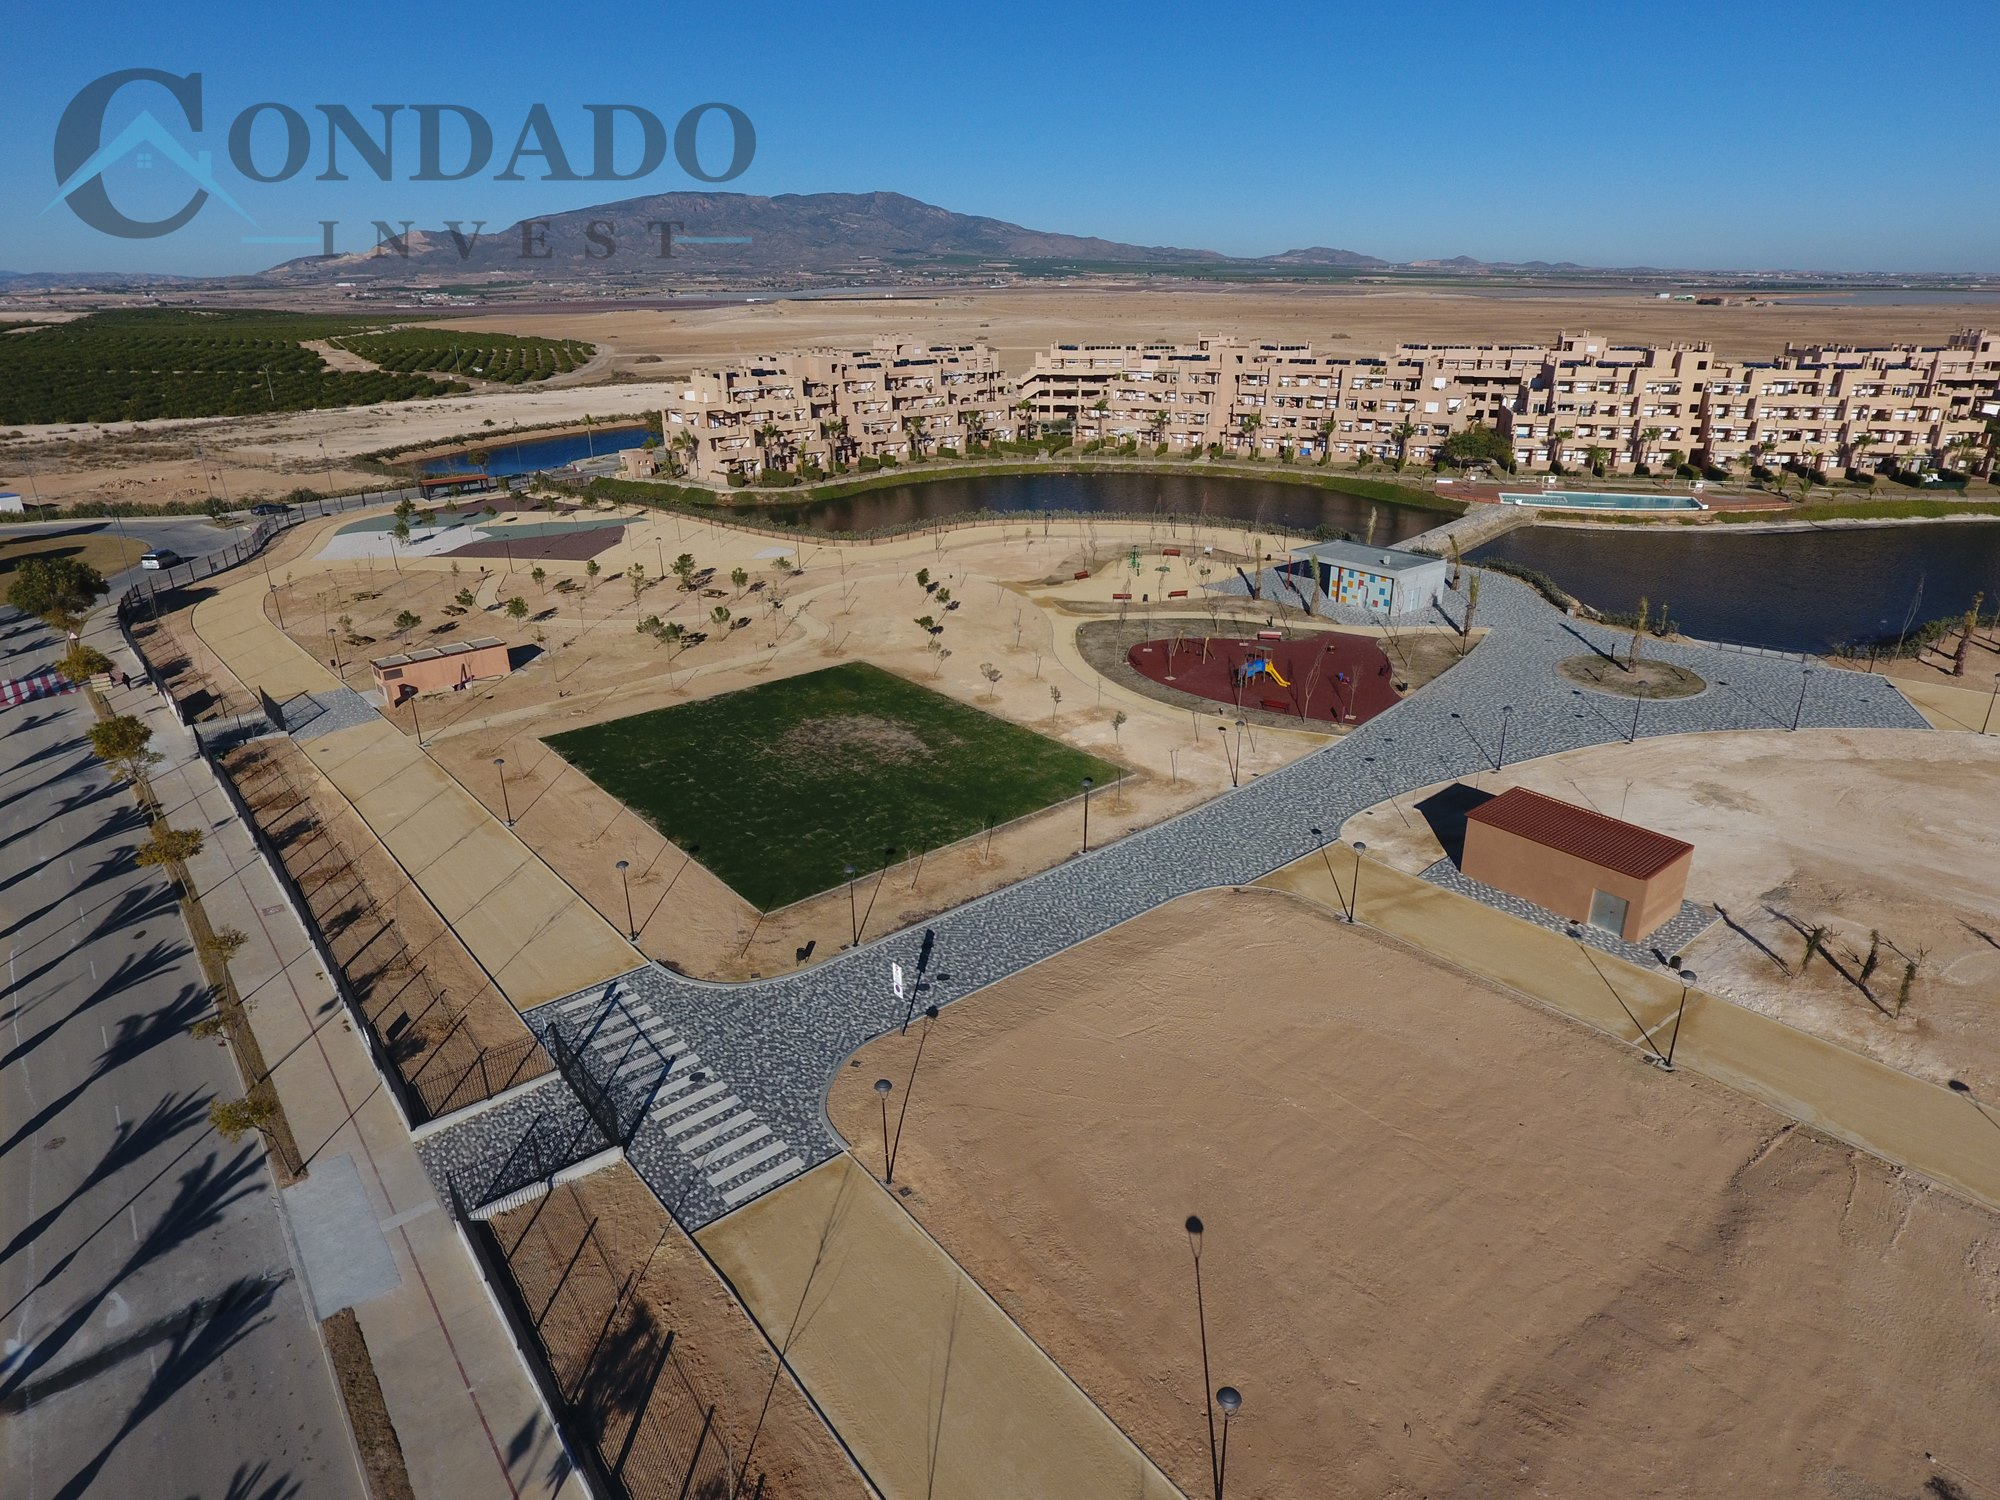 New recreational part at Condado de Alhama